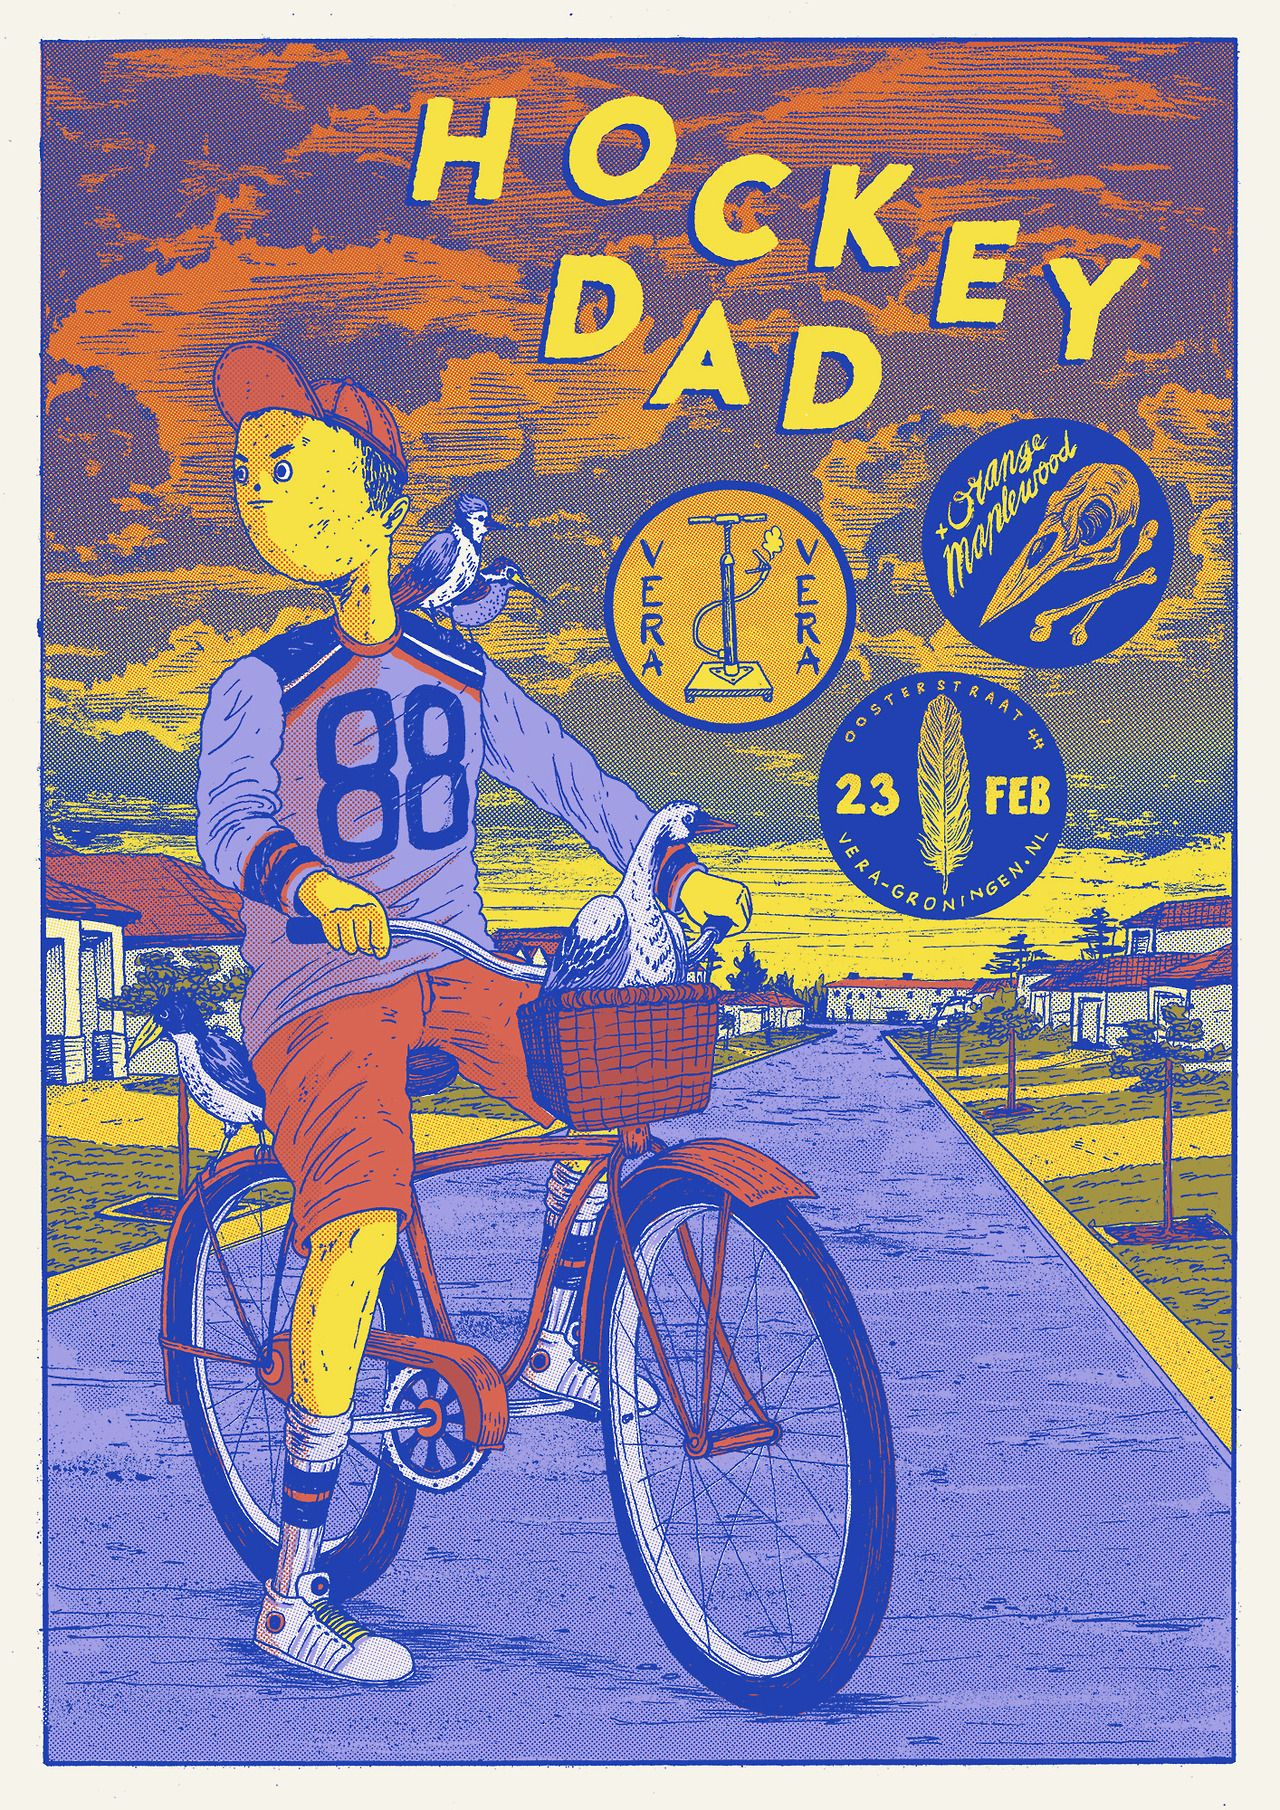 New Poster For Hockey Dad Orange Maplewood 23 02 Music Poster Design Band Posters Retro Poster